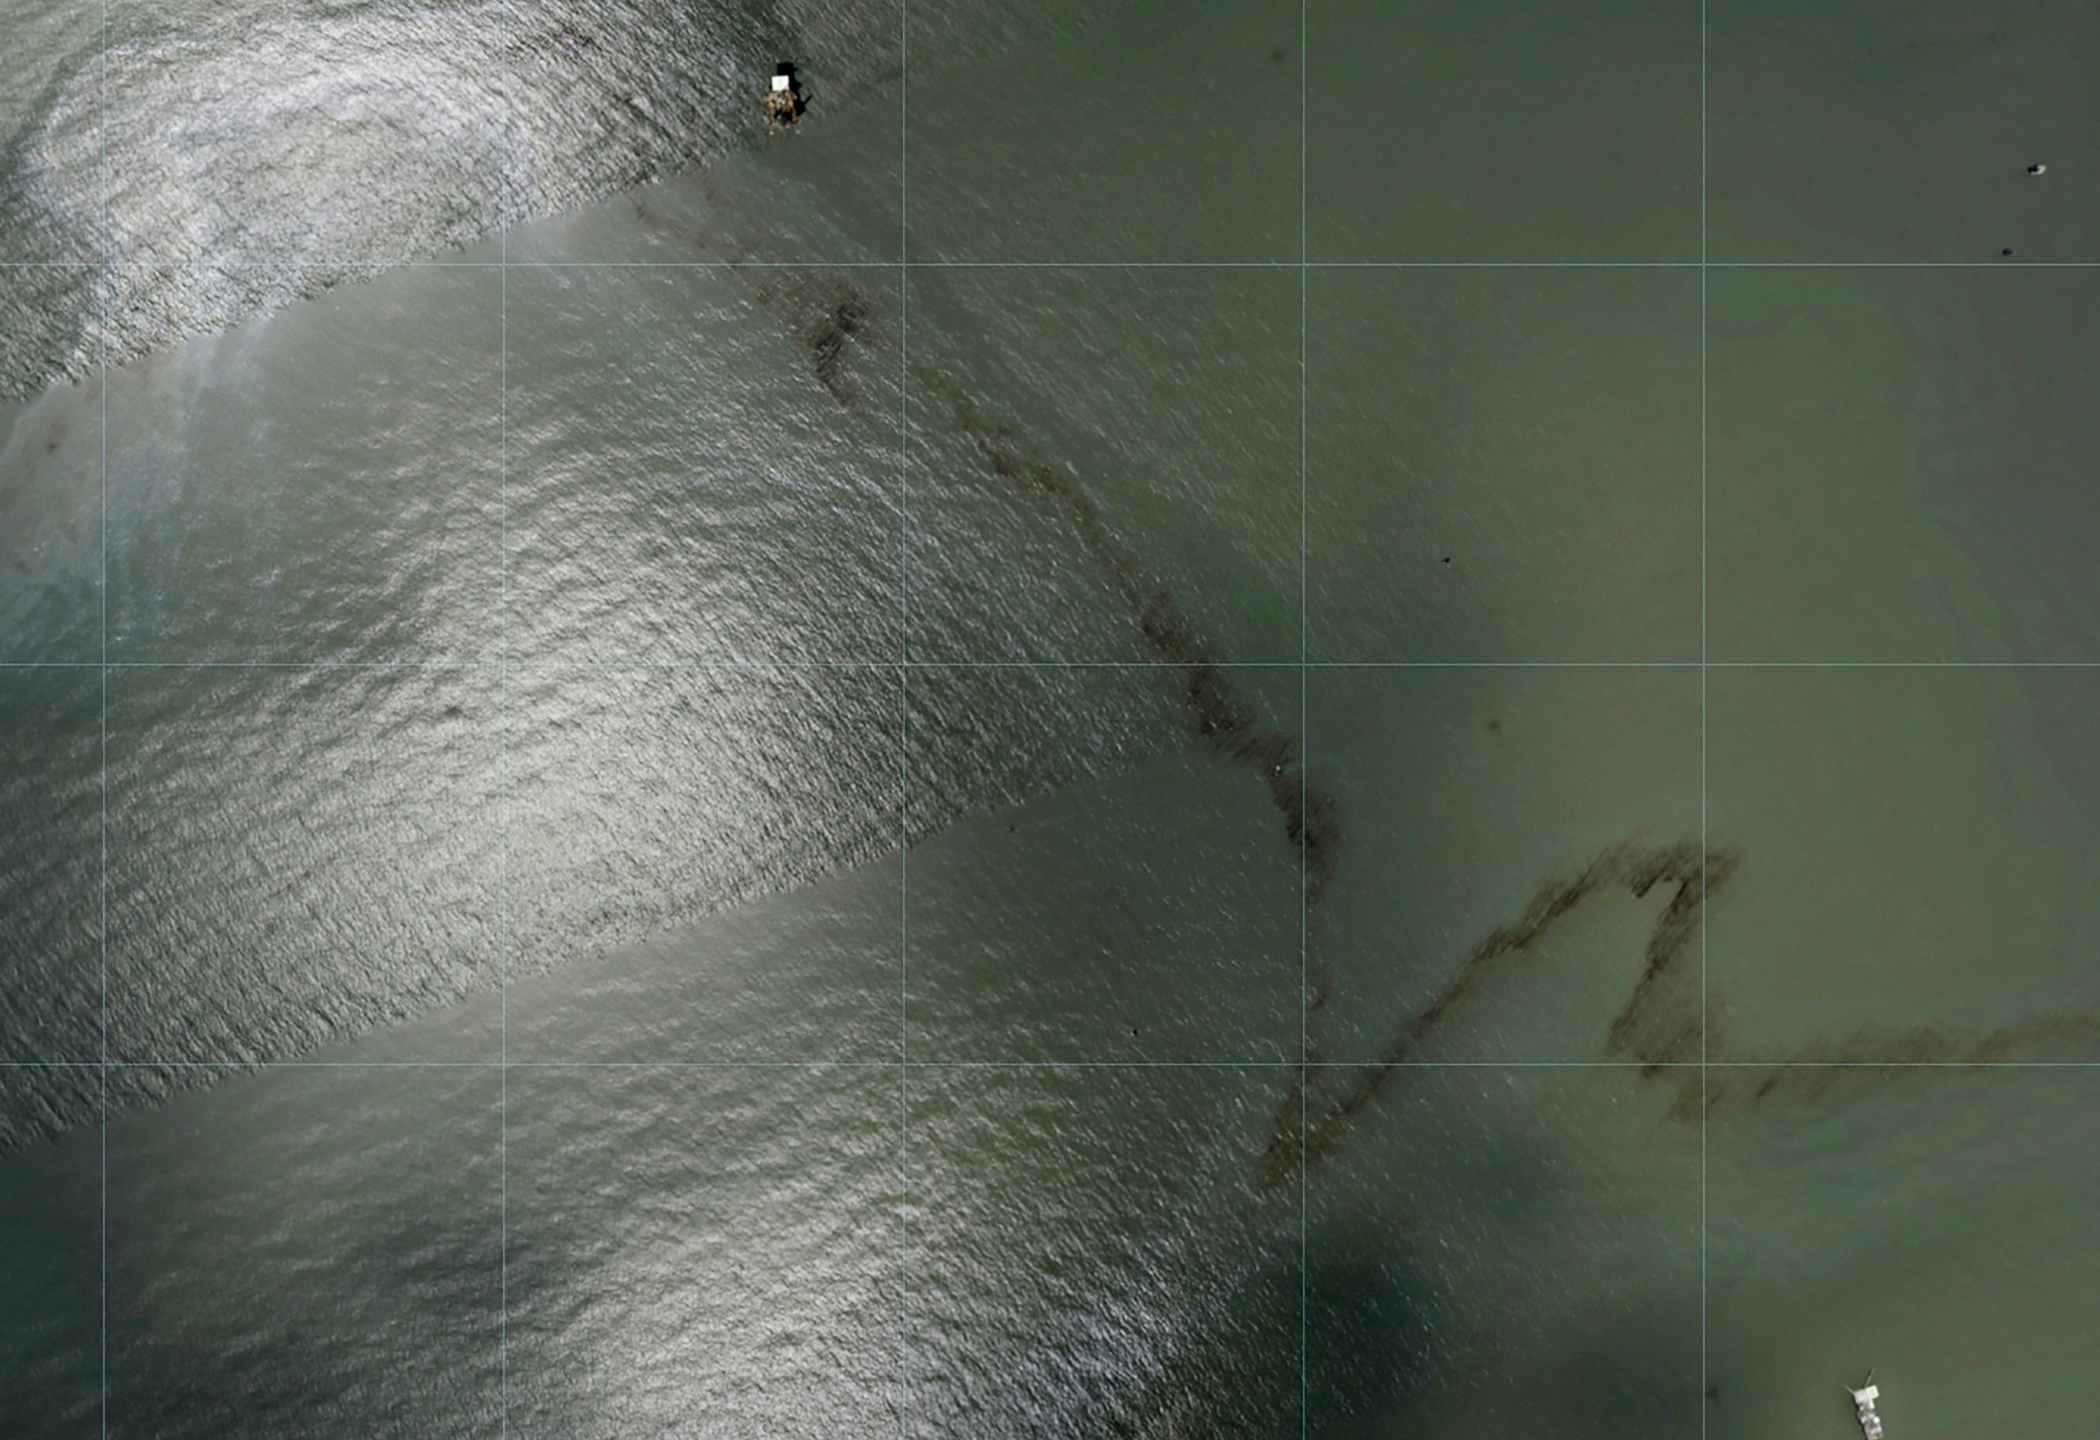 Photos captured by National Oceanic and Atmospheric Administration aircraft Tuesday, Aug. 31, 2021 and reviewed by The Associated Press show a miles long black slick floating in the Gulf of Mexico near a large rig marked with the name Enterprise Offshore Drilling. The company, based in Houston, did not immediately respond to requests for comment by phone or email on Wednesday. EPA officials said Wednesday hey were unaware of any leak requiring a federal response. (NOAA via AP)